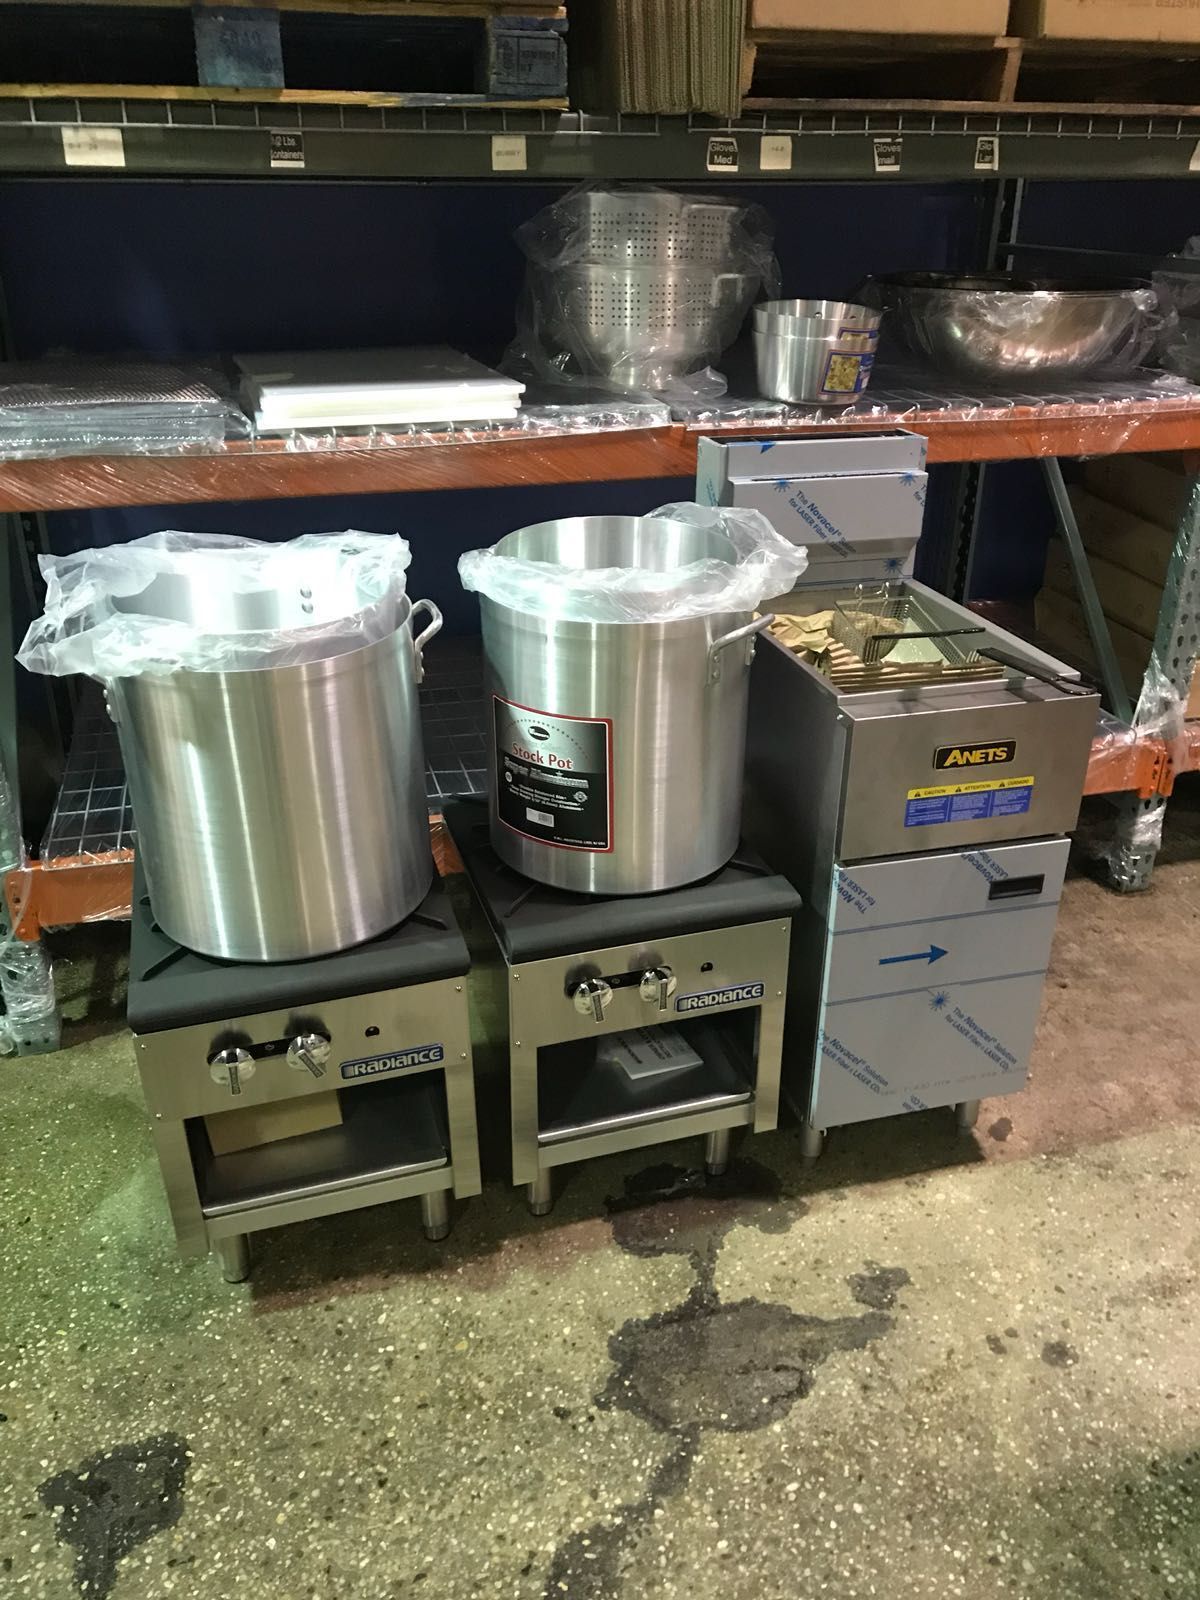 Radiance Ranges Commercial Stock Pots And An Anets Fryer Https Www Culinarydepot Commercial Kitchen Restaurant Kitchen Design Commercial Kitchen Equipment